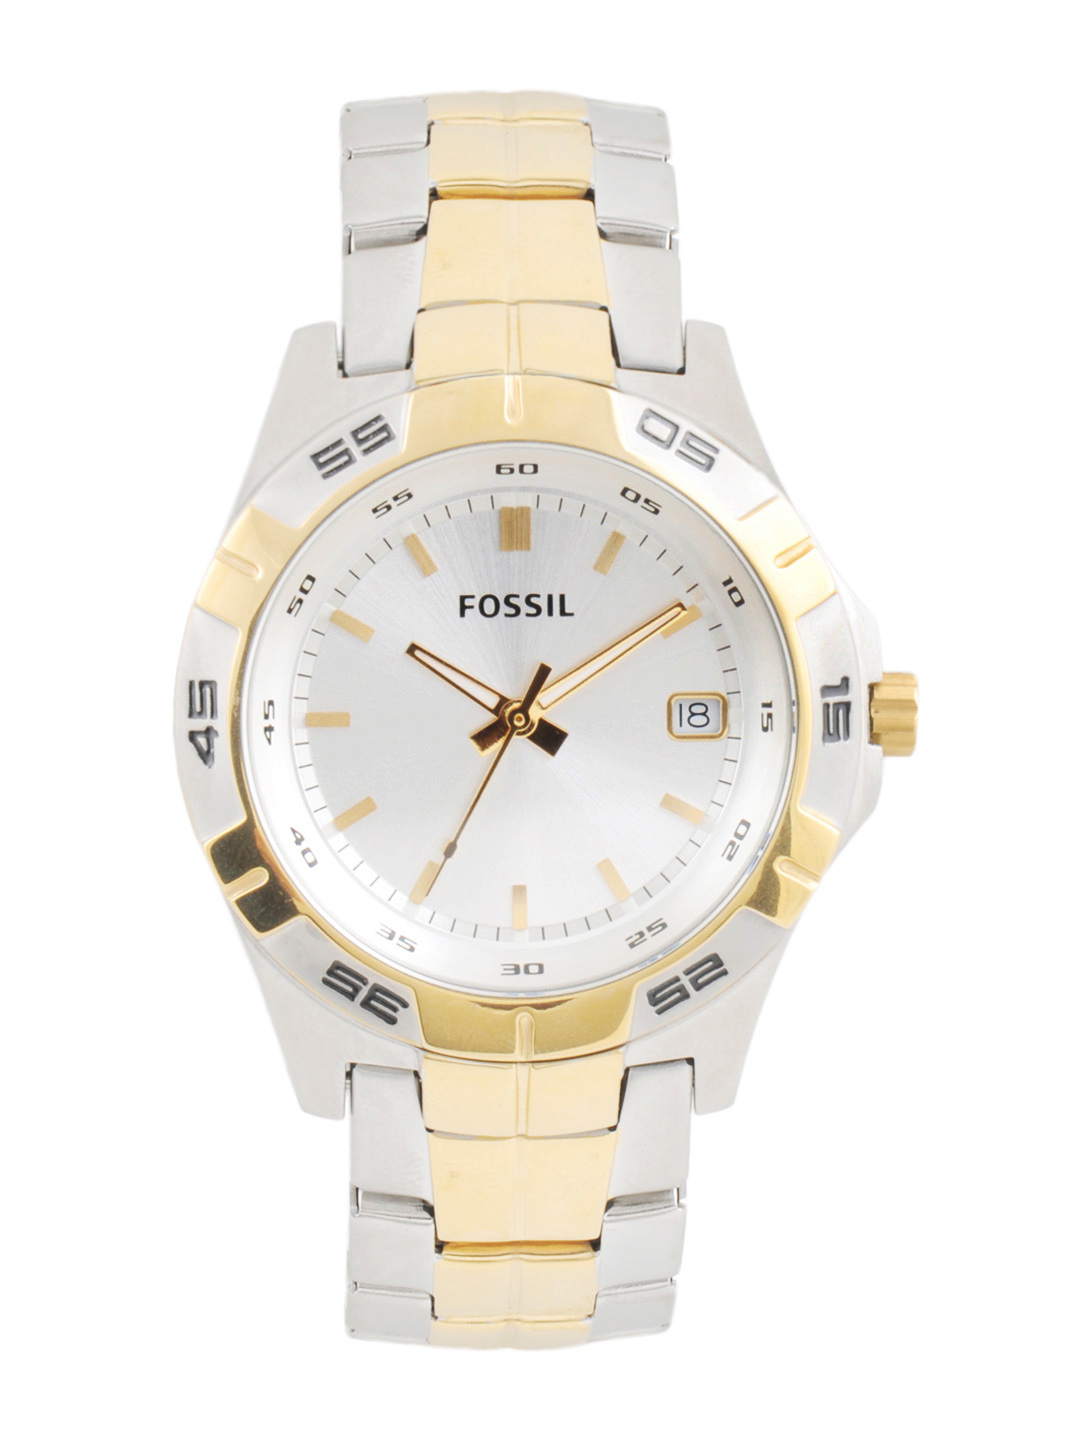 Fossil Men Silver Dial Watch